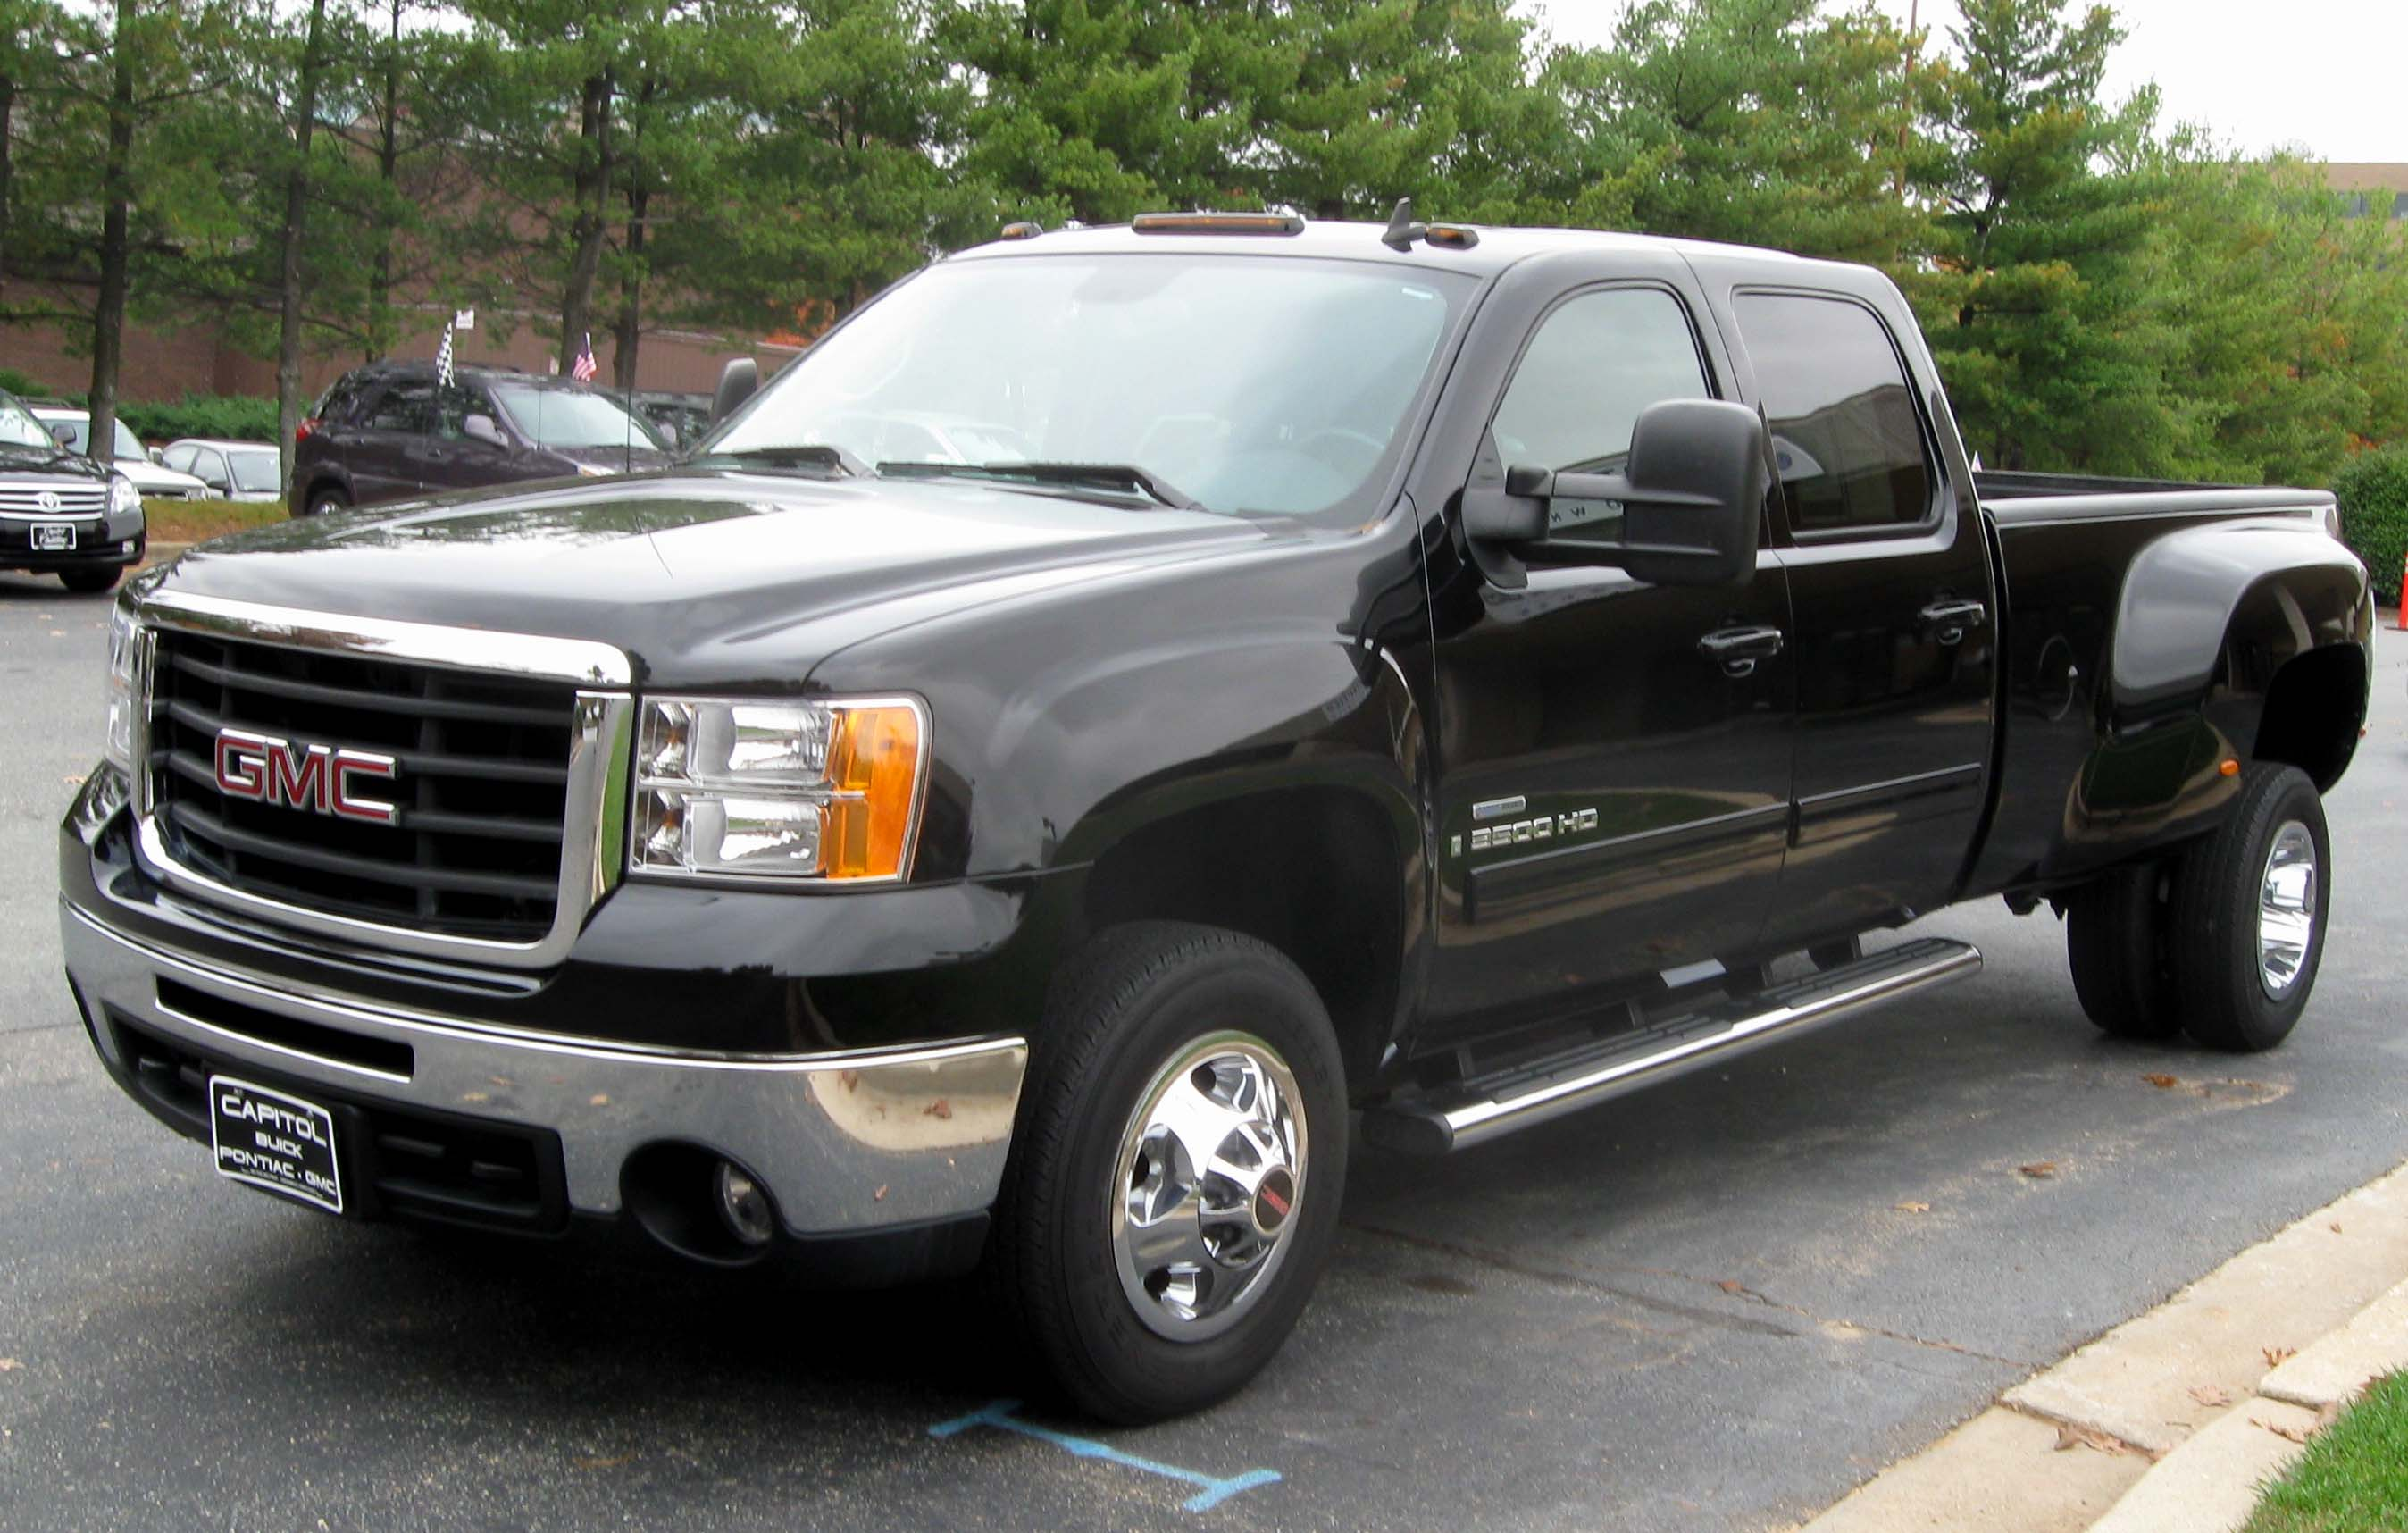 Description 2008 GMC Sierra 3500HD SLT crew cab -- 10-30-2009.jpg